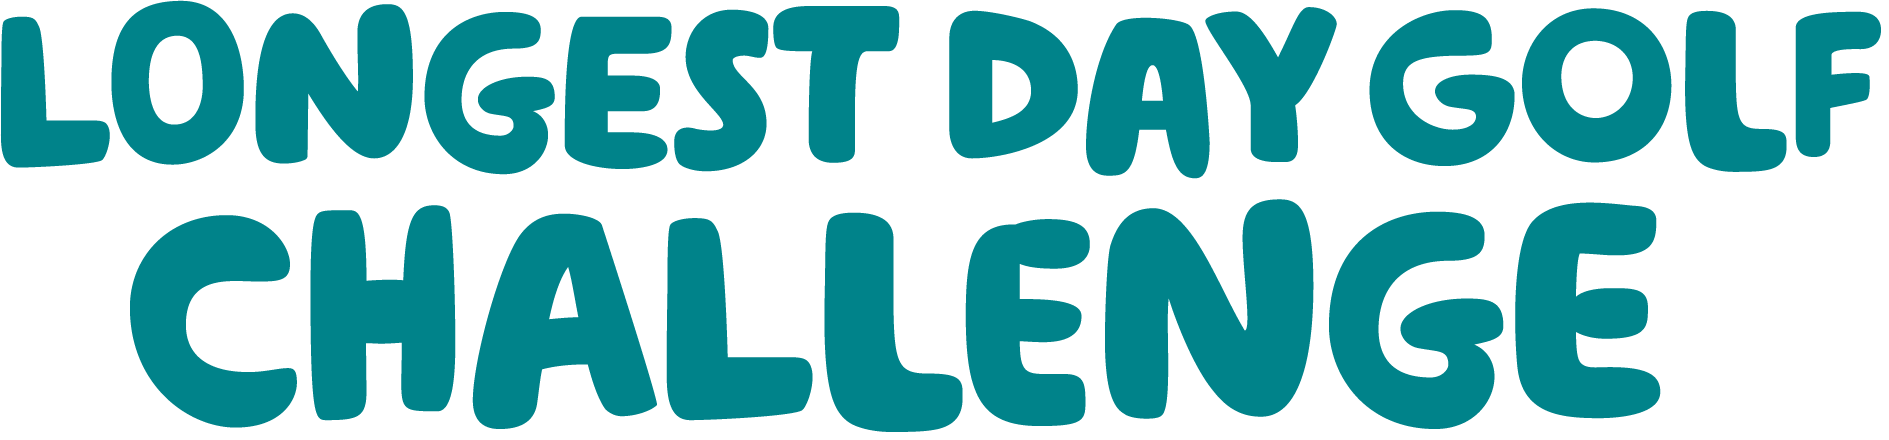 Longest Day Golf Challenge logo